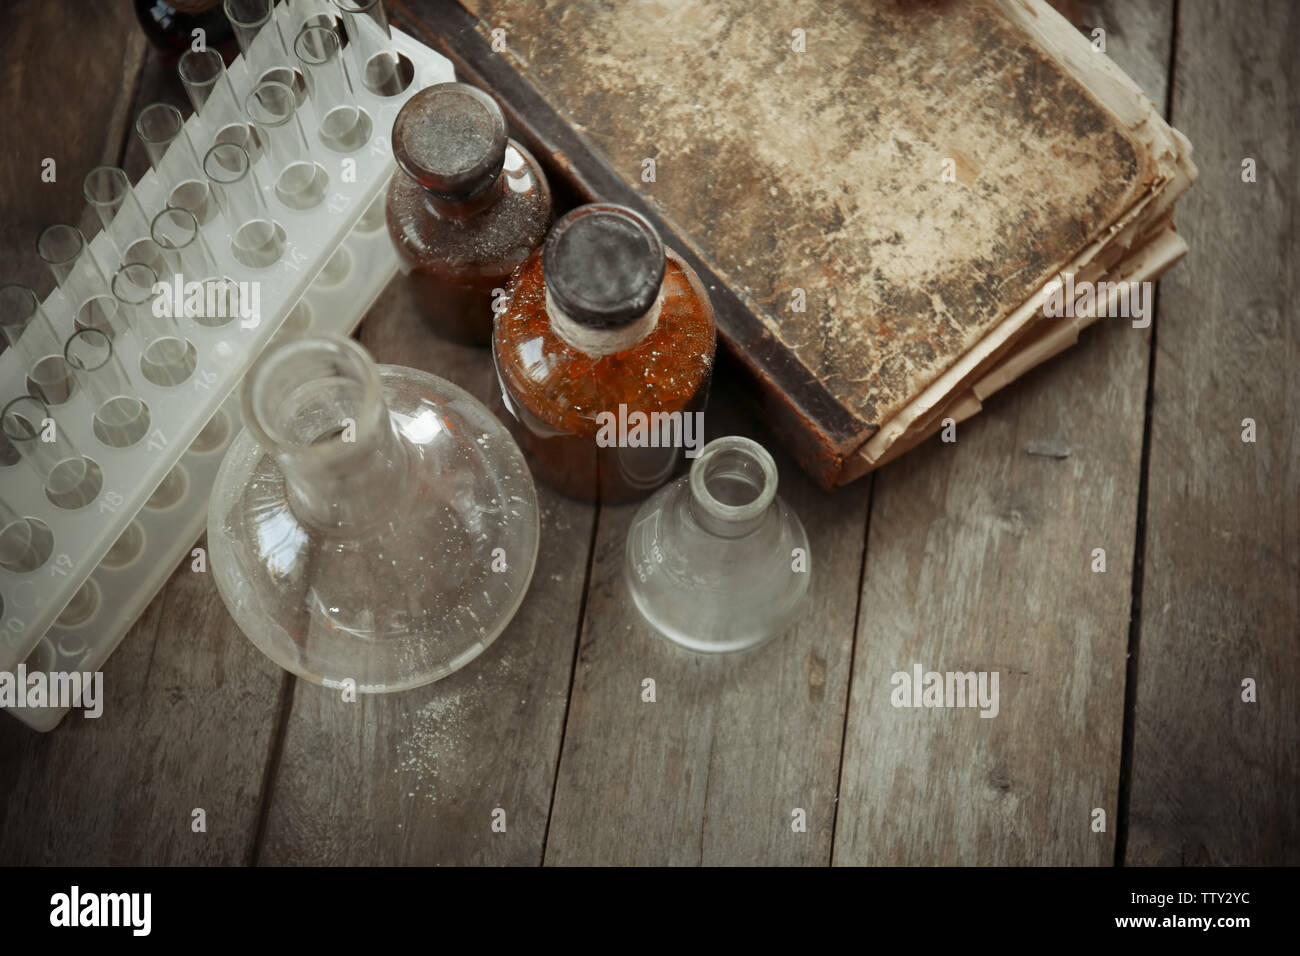 Vintage equipment of chemical laboratory on wooden background, closeup - Stock Image